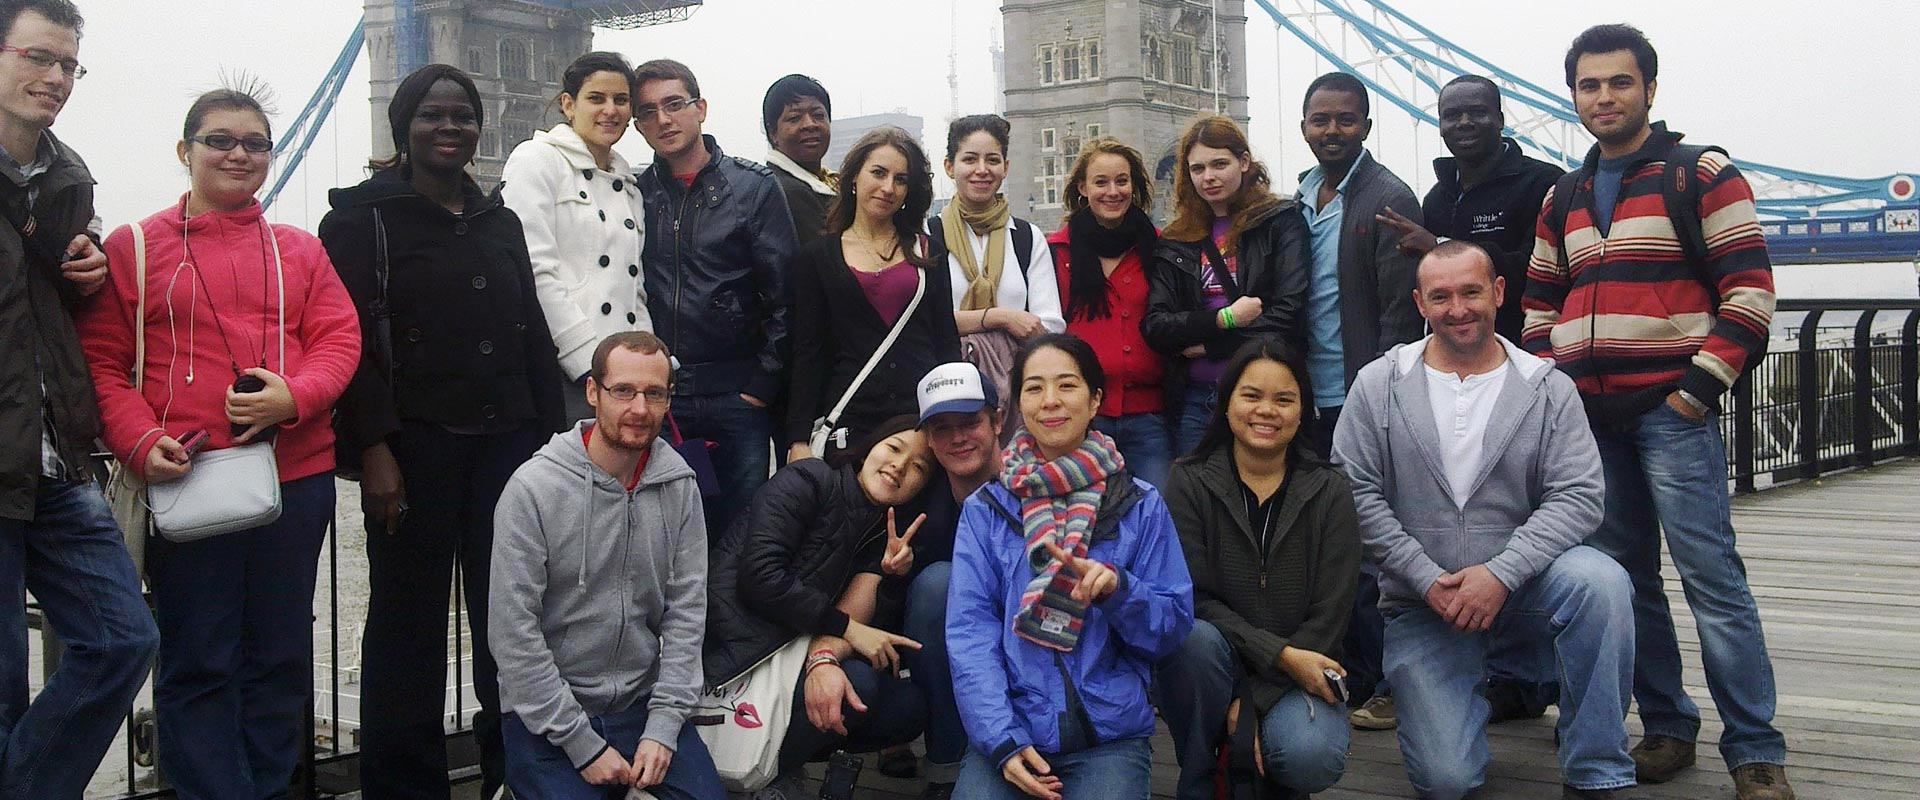 International students on a trip to Tower Bridge; London, October 2010